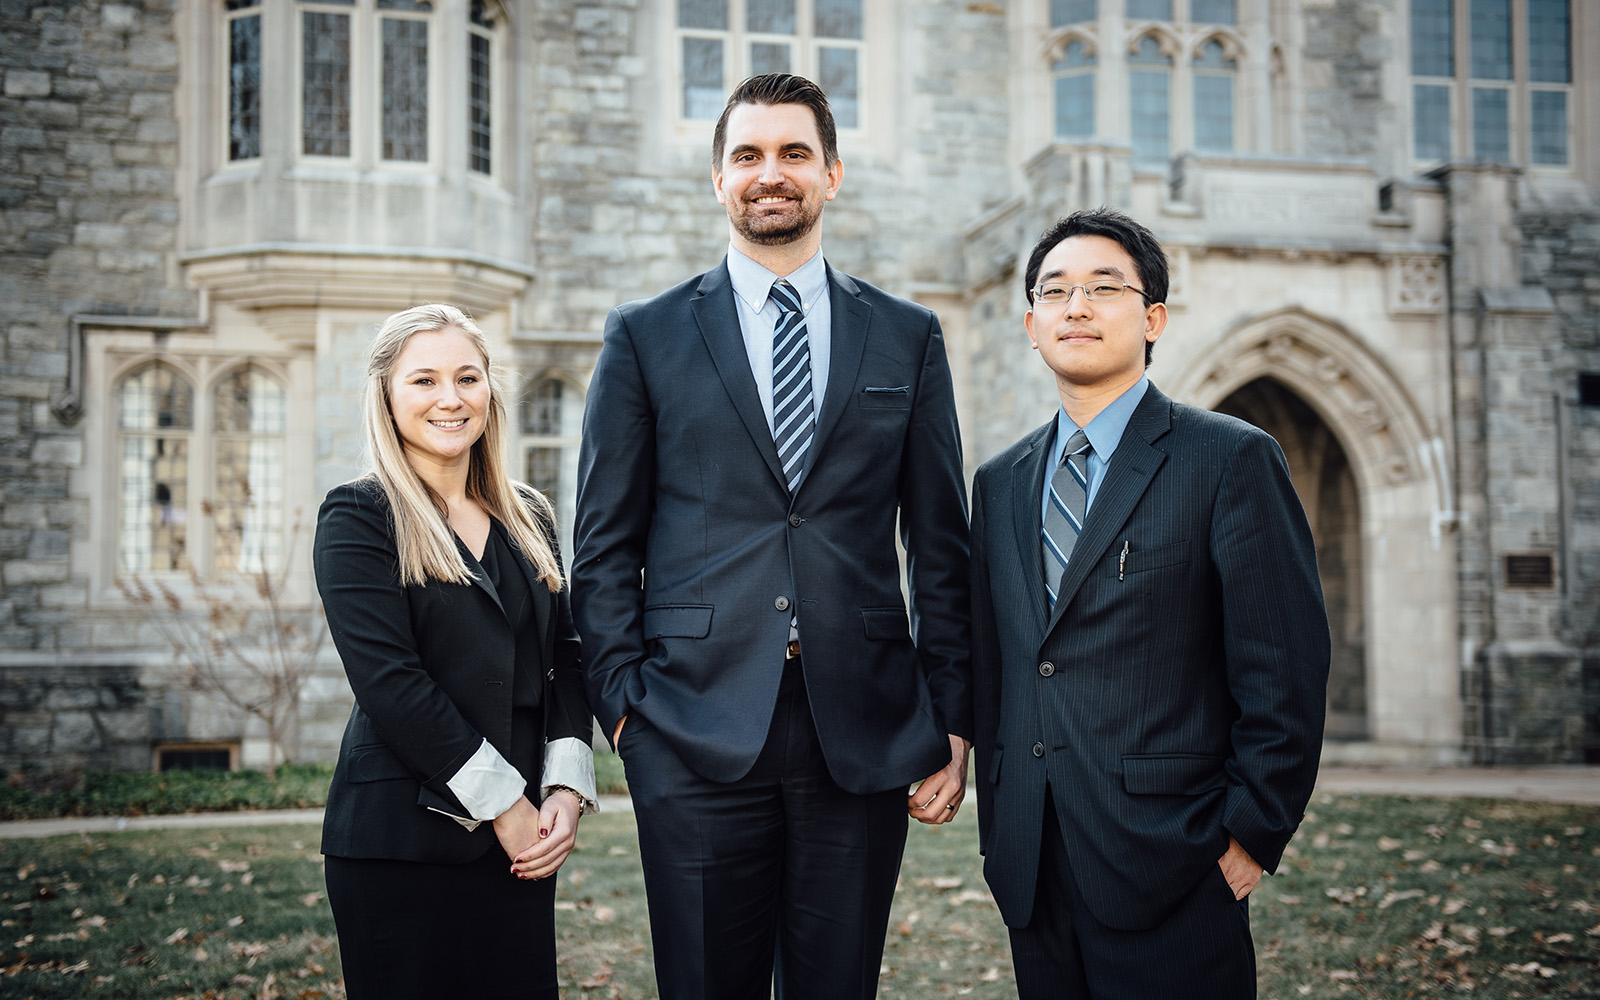 From left: Brooke Tinnerello '17, UConn law student, Christopher DiGiacomo '18 MBA, and Steven Lin, UConn law student. They were the winning team in the 4th Annual Business/Law Negotiation Competition on January 27. (Nathan Oldham/UConn School of Business)